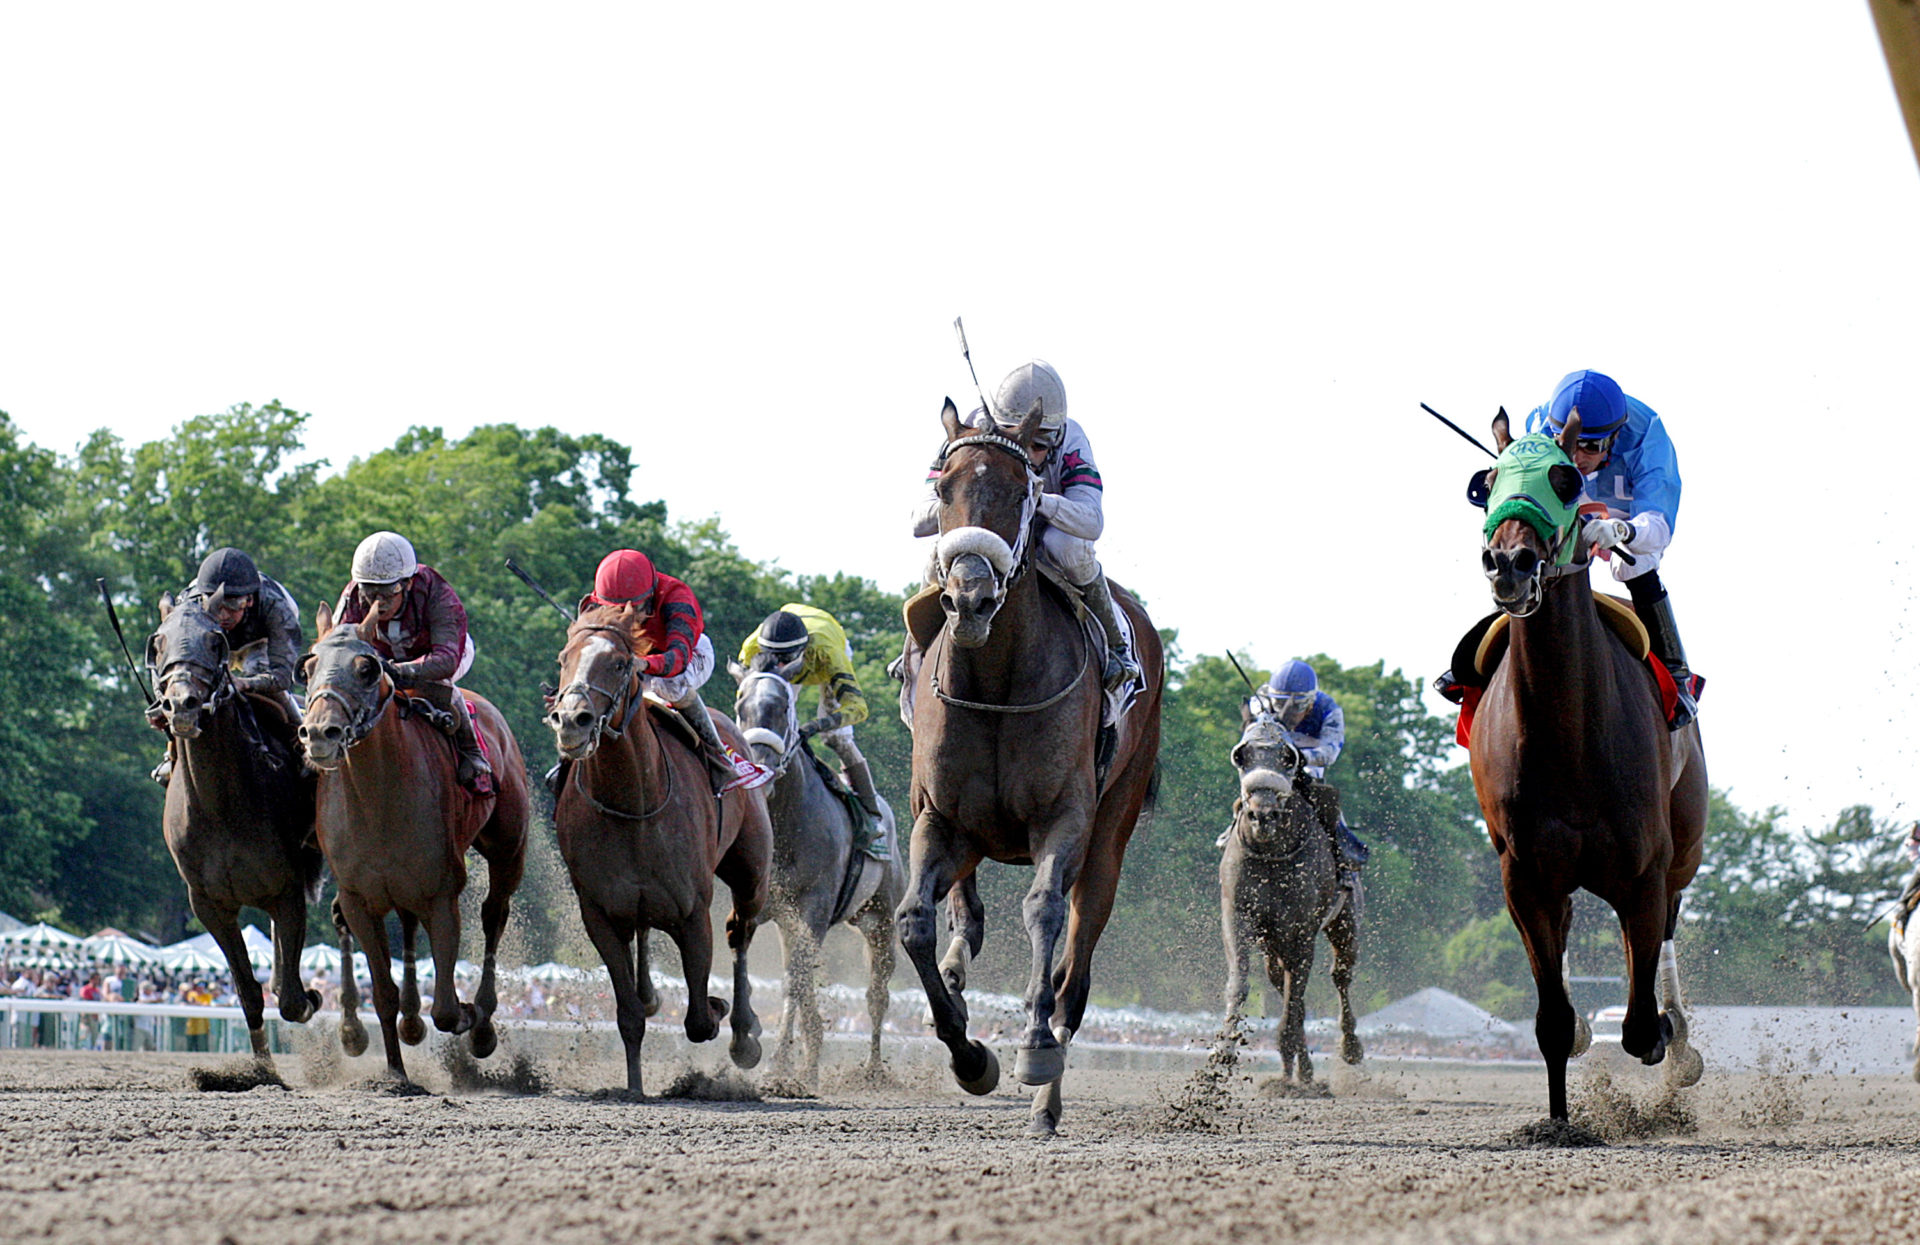 Chublicious, Chalon impressive winners at Monmouth Park